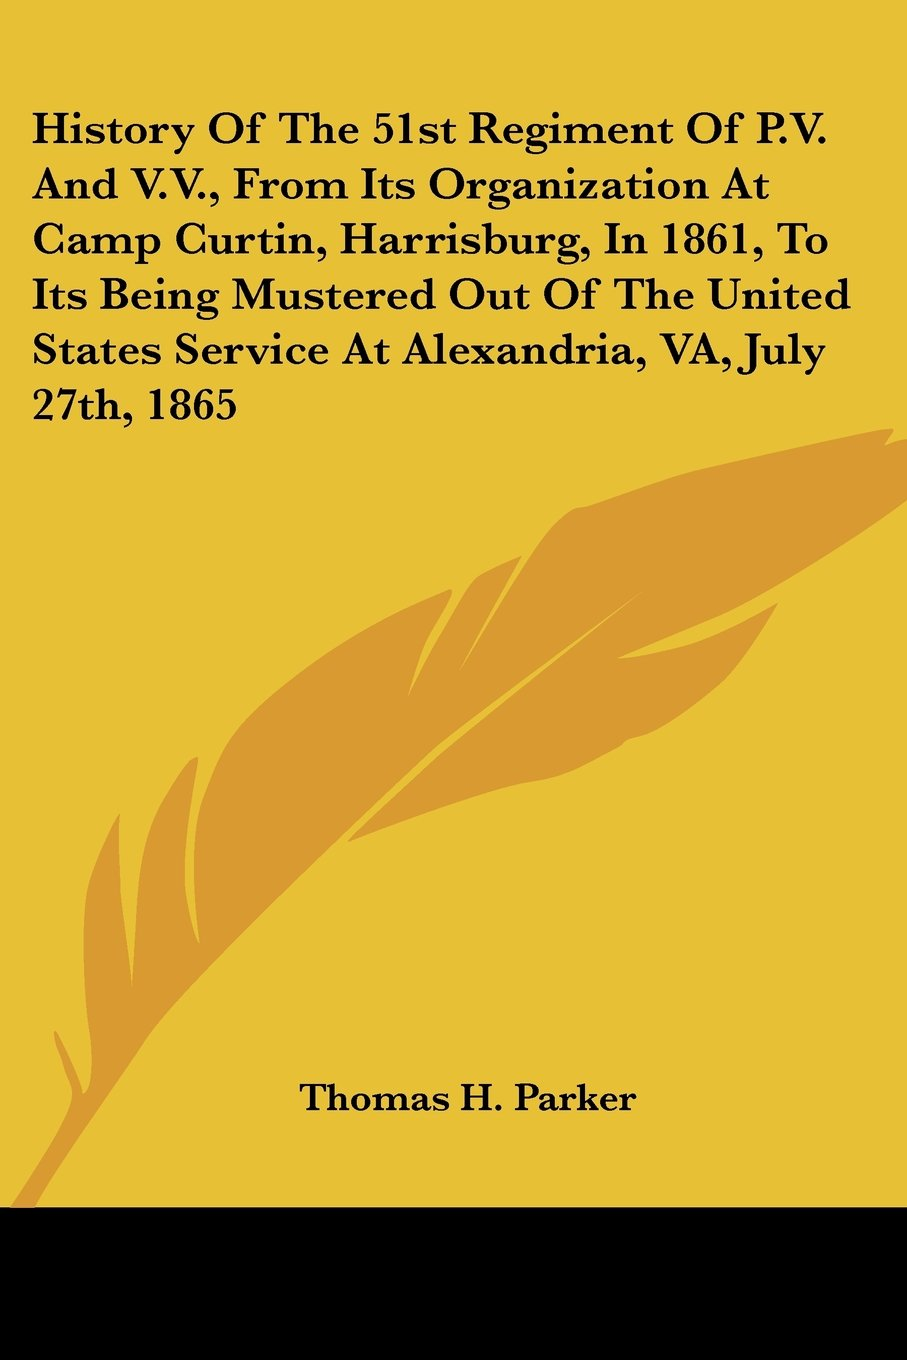 Download History Of The 51st Regiment Of P.V. And V.V., From Its Organization At Camp Curtin, Harrisburg, In 1861, To Its Being Mustered Out Of The United States Service At Alexandria, VA, July 27th, 1865 PDF